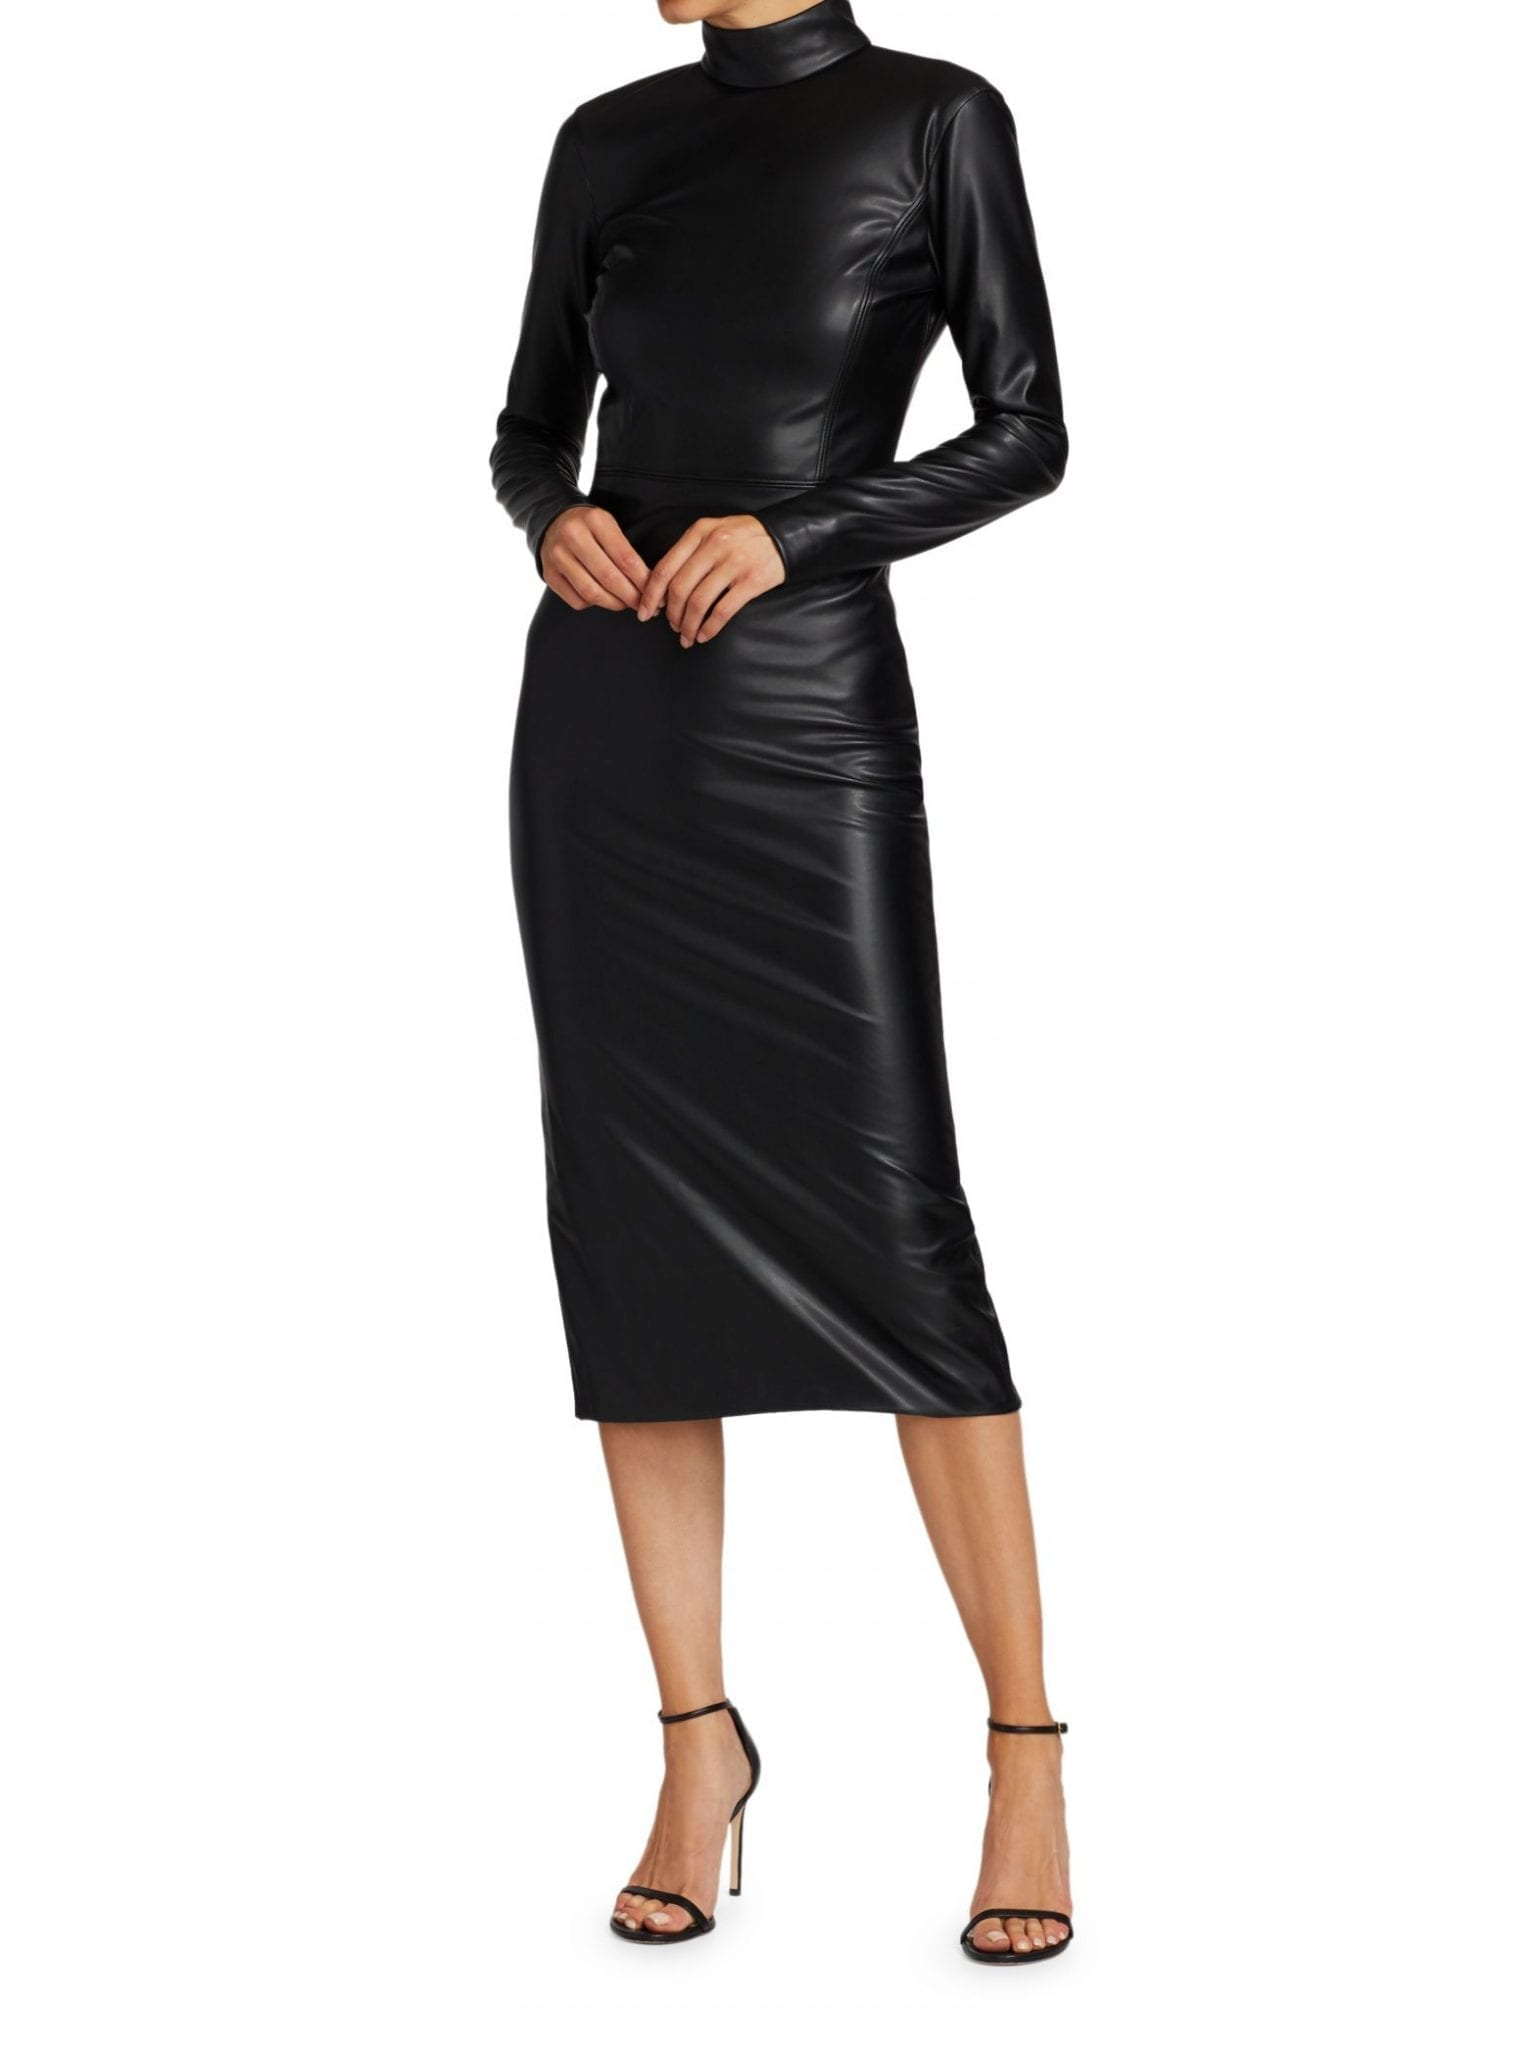 ALICE + OLIVIA Delora Vegan Leather Bodycon Midi Dress